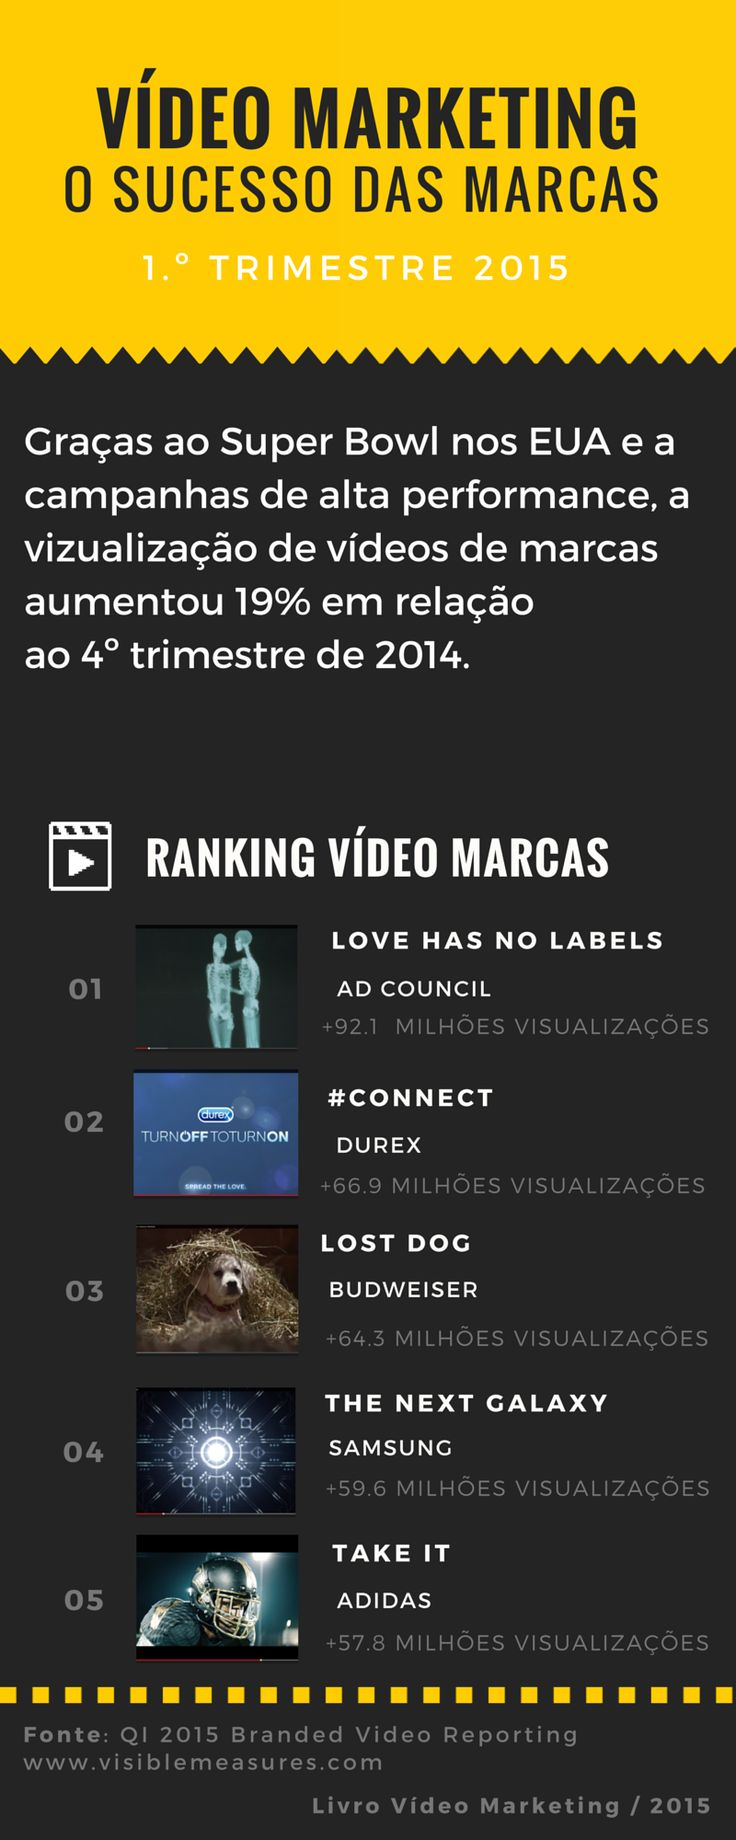 http://videomarketing360.net/ Ranking dos vídeos das marcas no 1º trimestre 2015 #videomarketing360